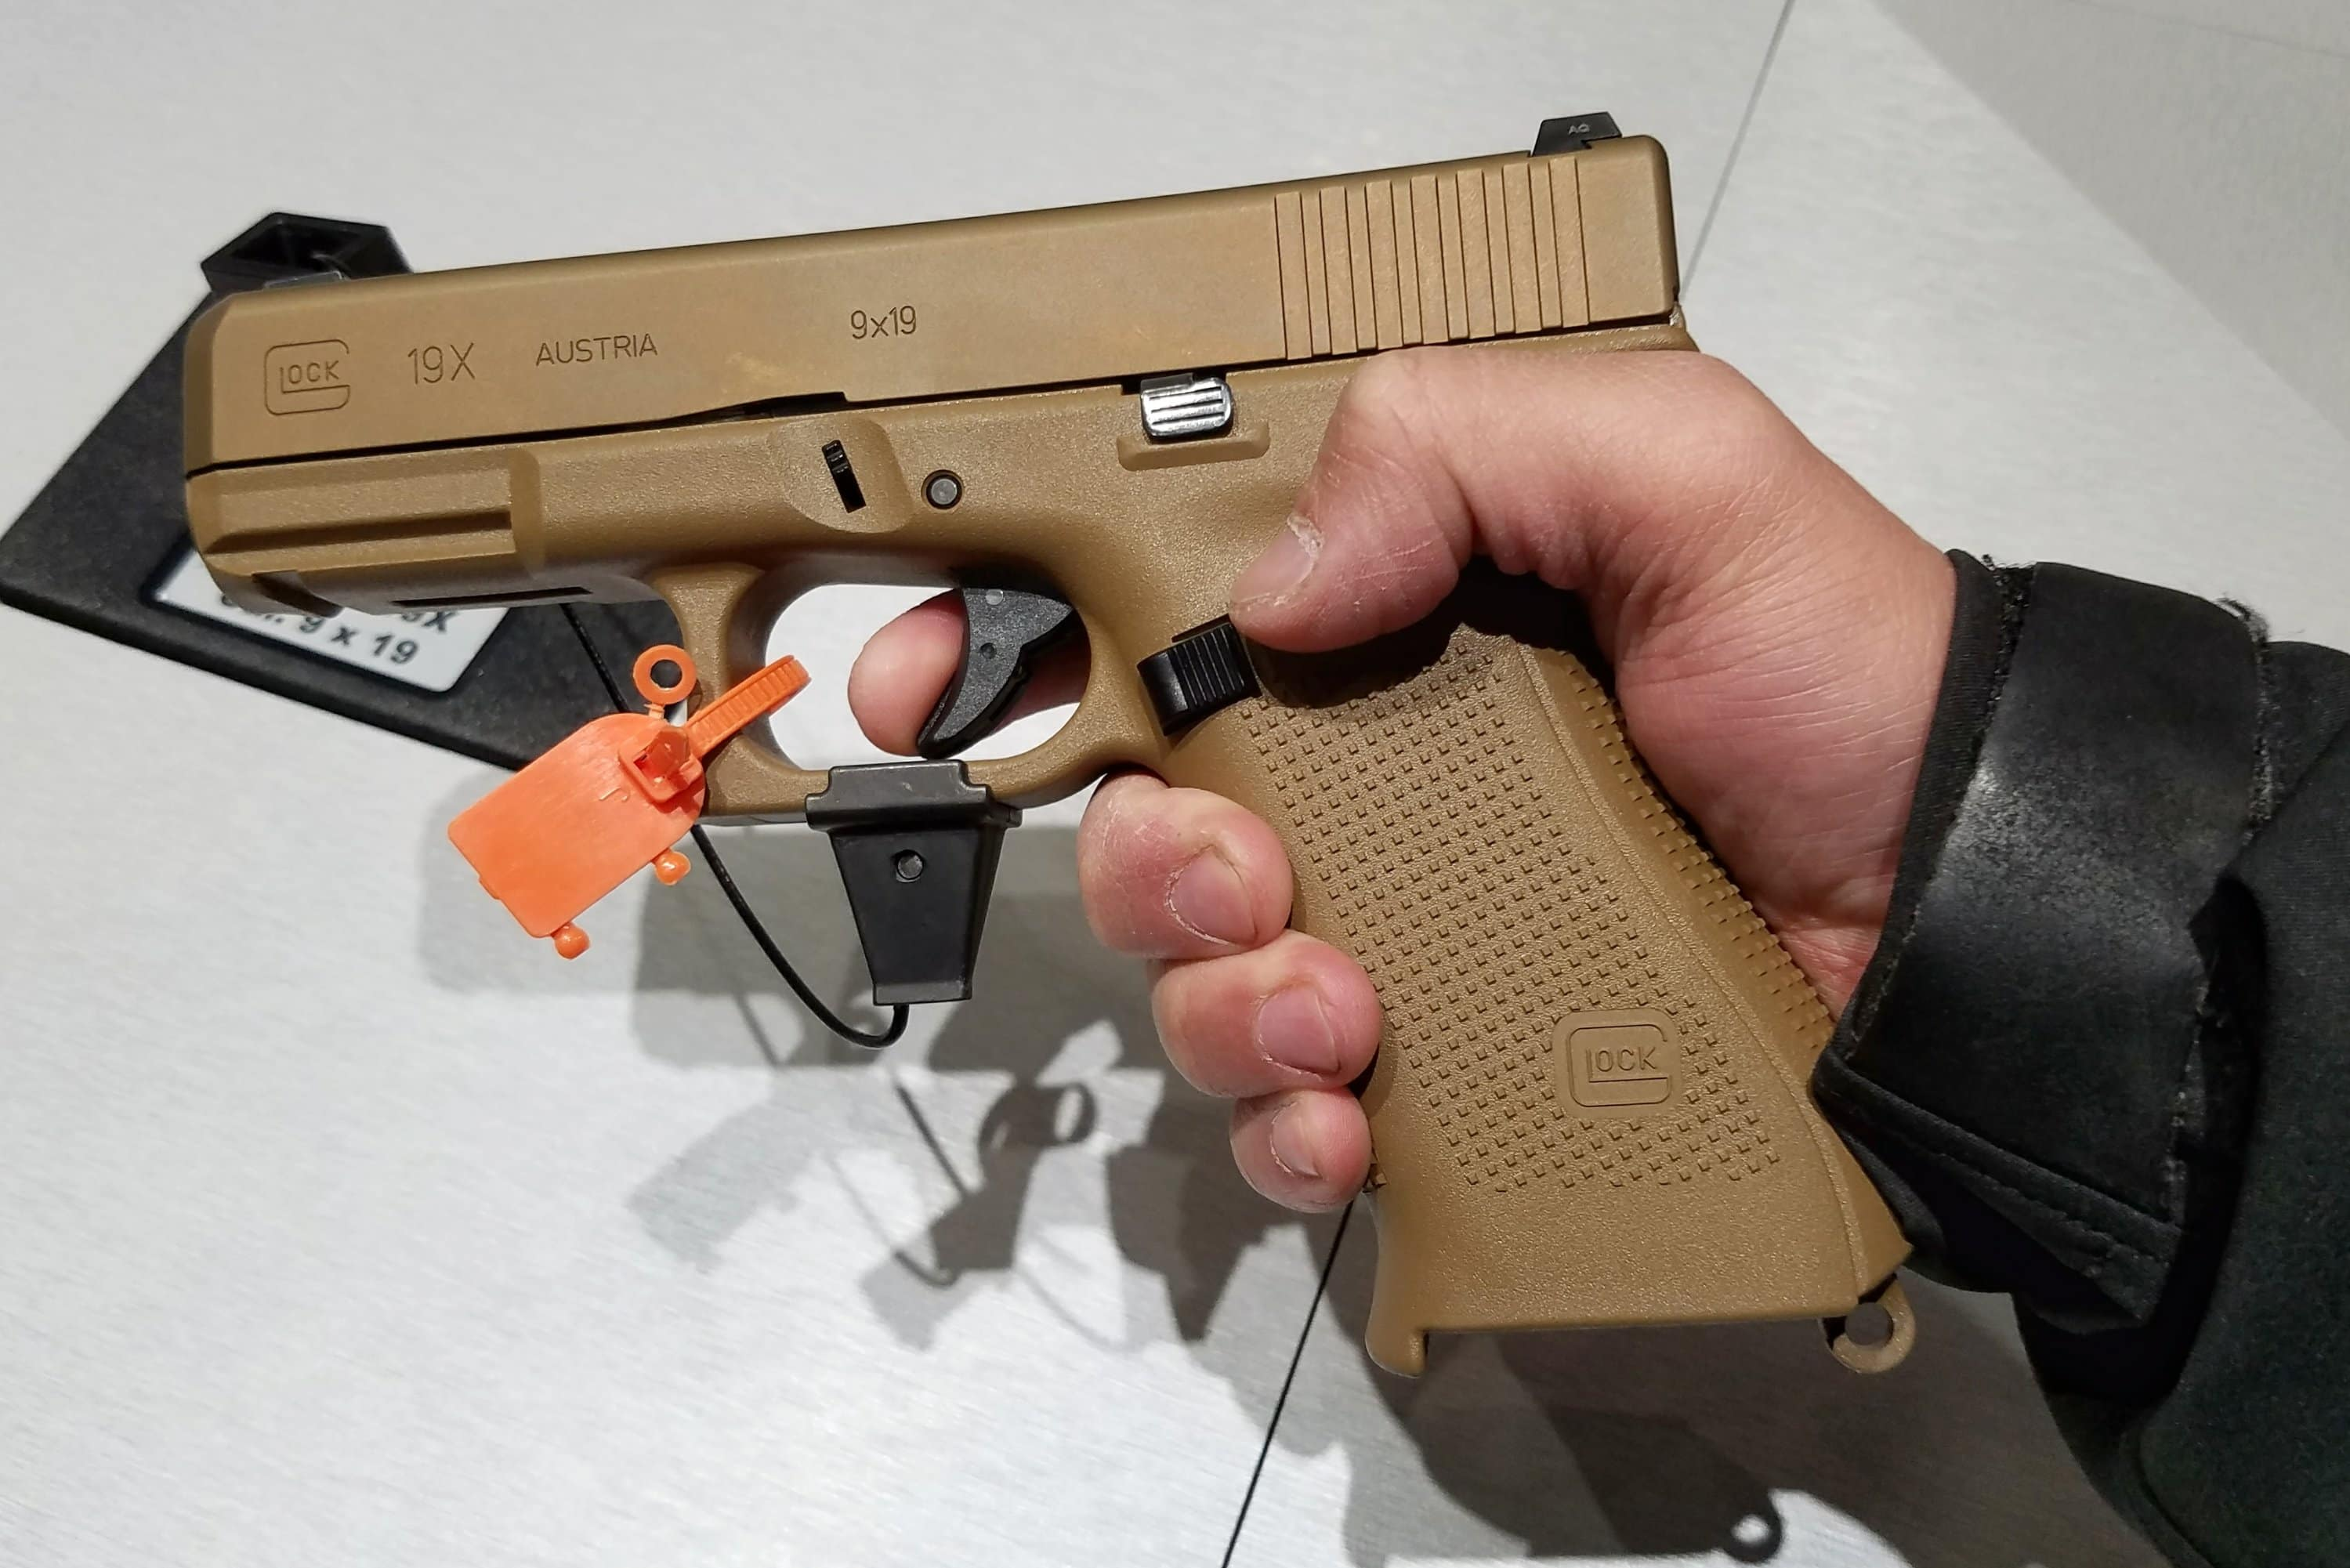 The Glock 19X on display at SHOT Show 2019.